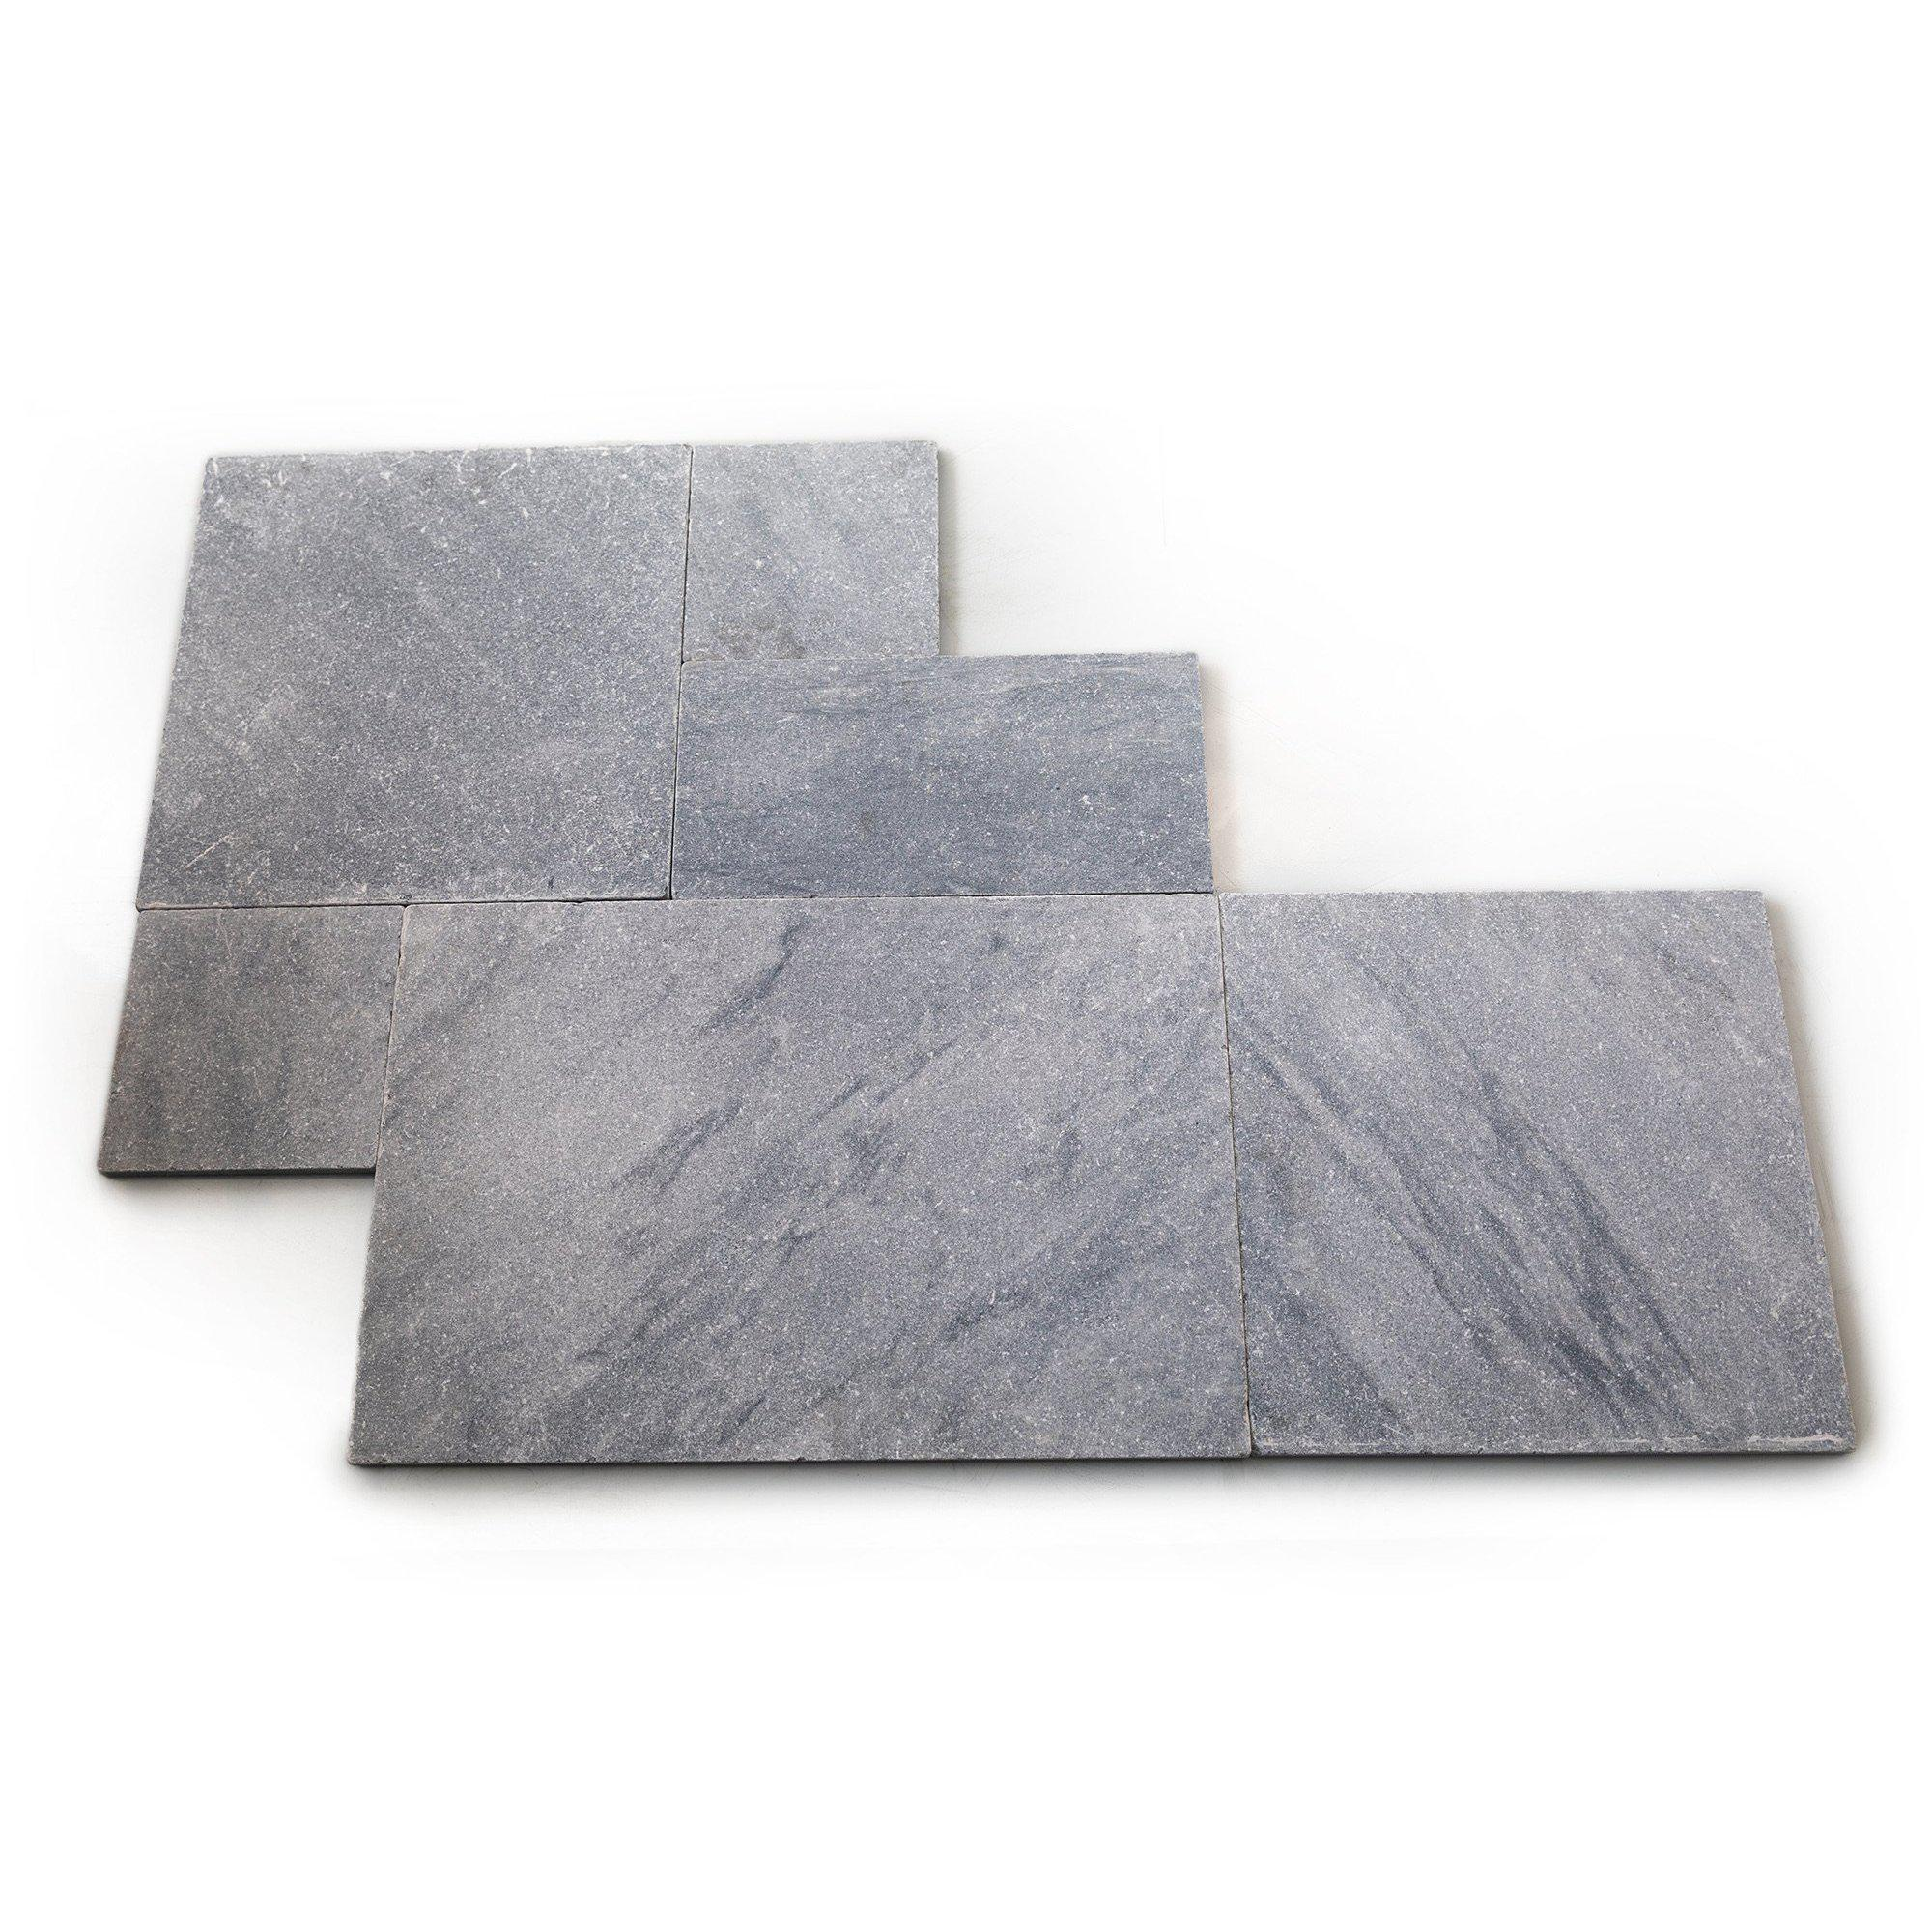 Sample - Marble Tile Pavers